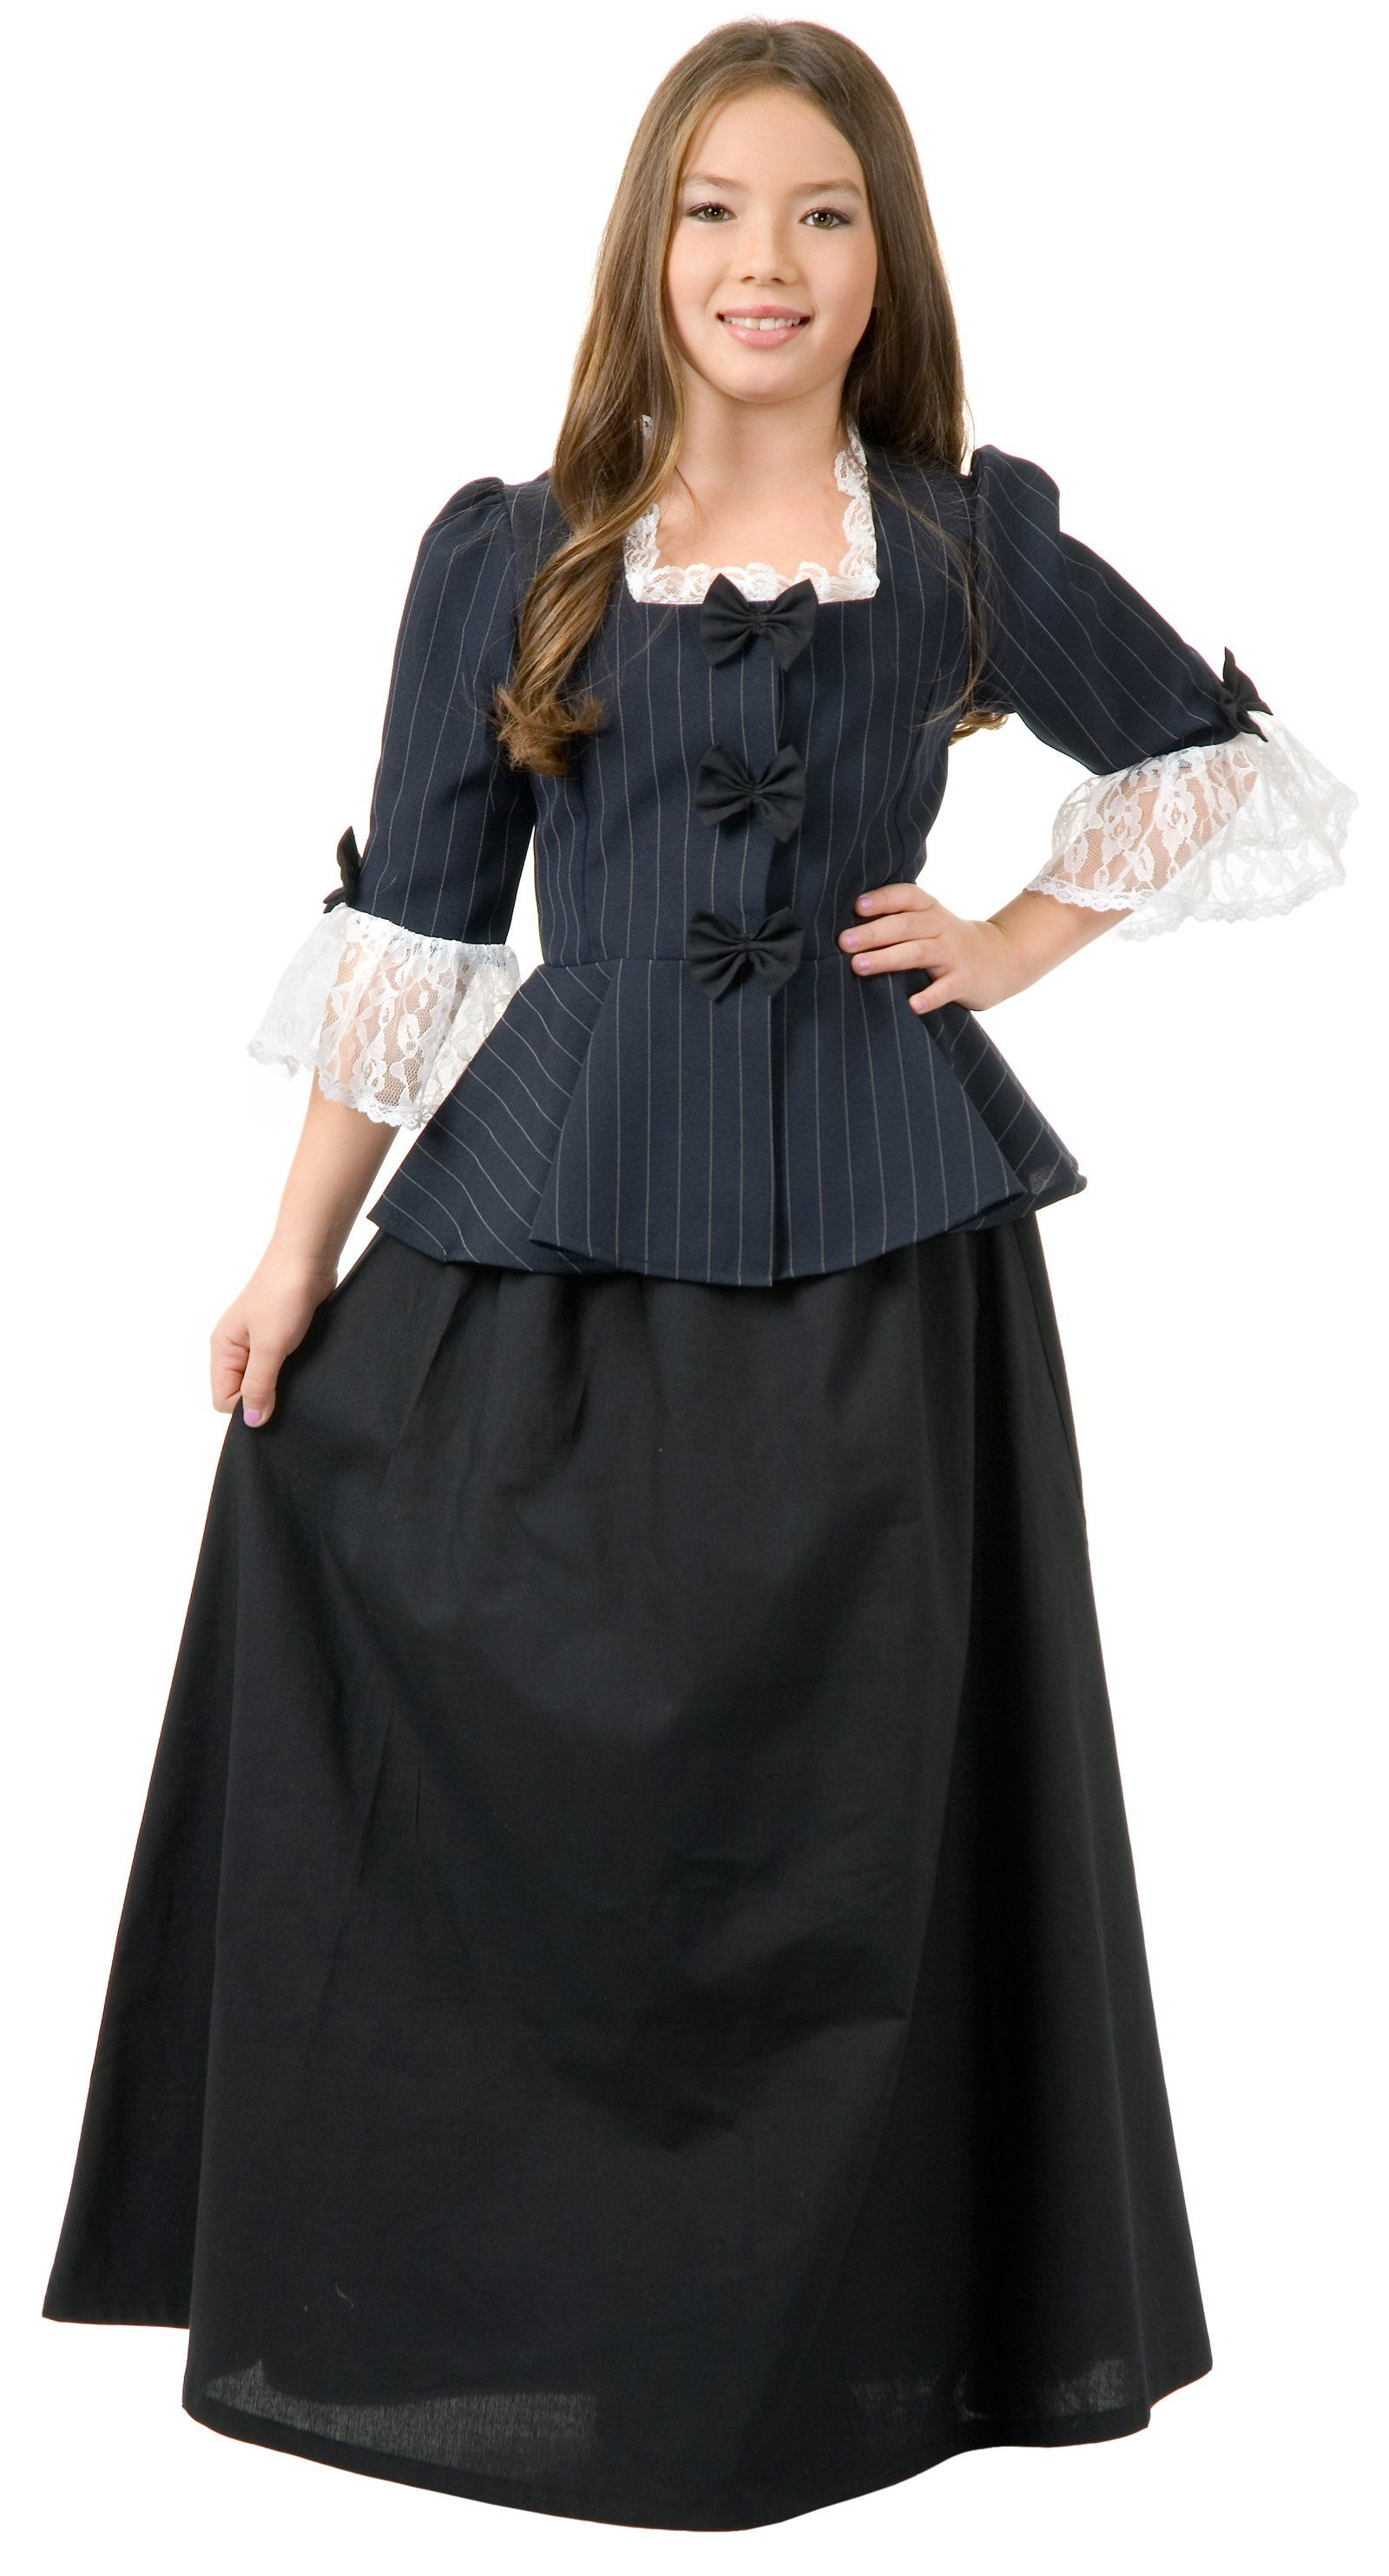 Colonial Girl Child Costume | Lady, Children and Girls